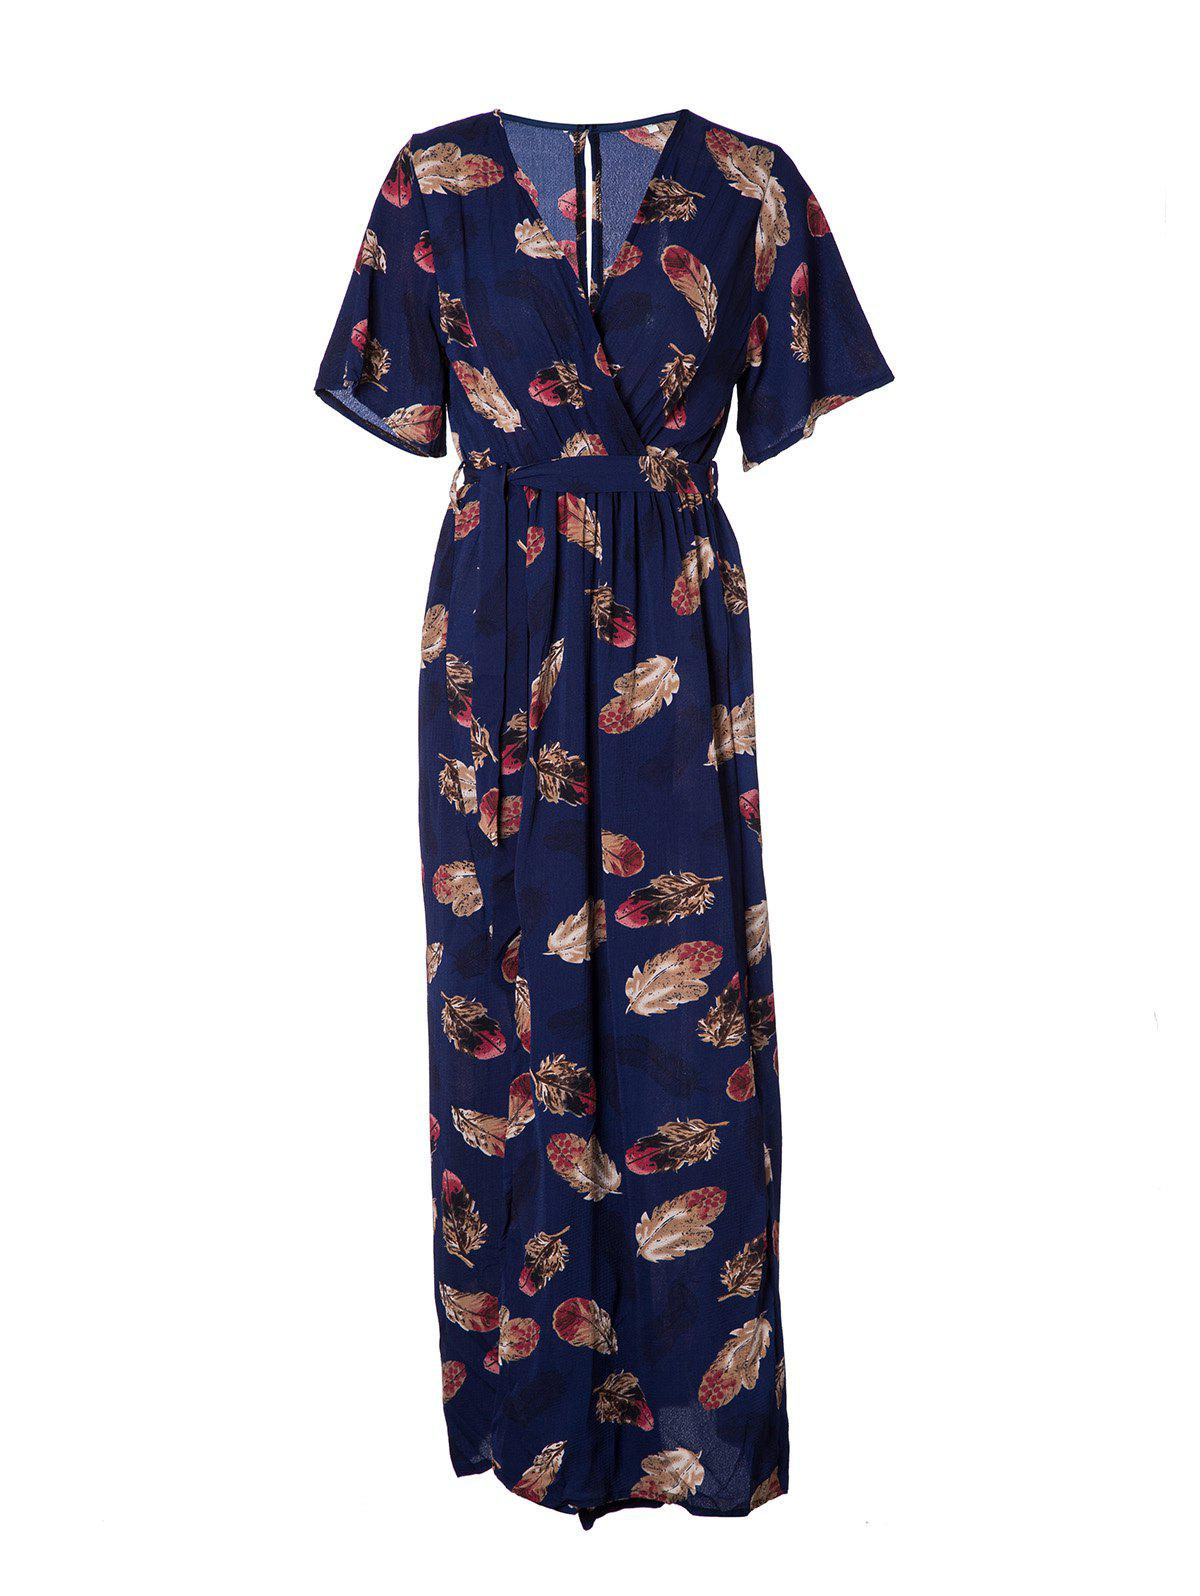 Women's V Neck Printed Sexy Chiffon Dress - DEEP BLUE L